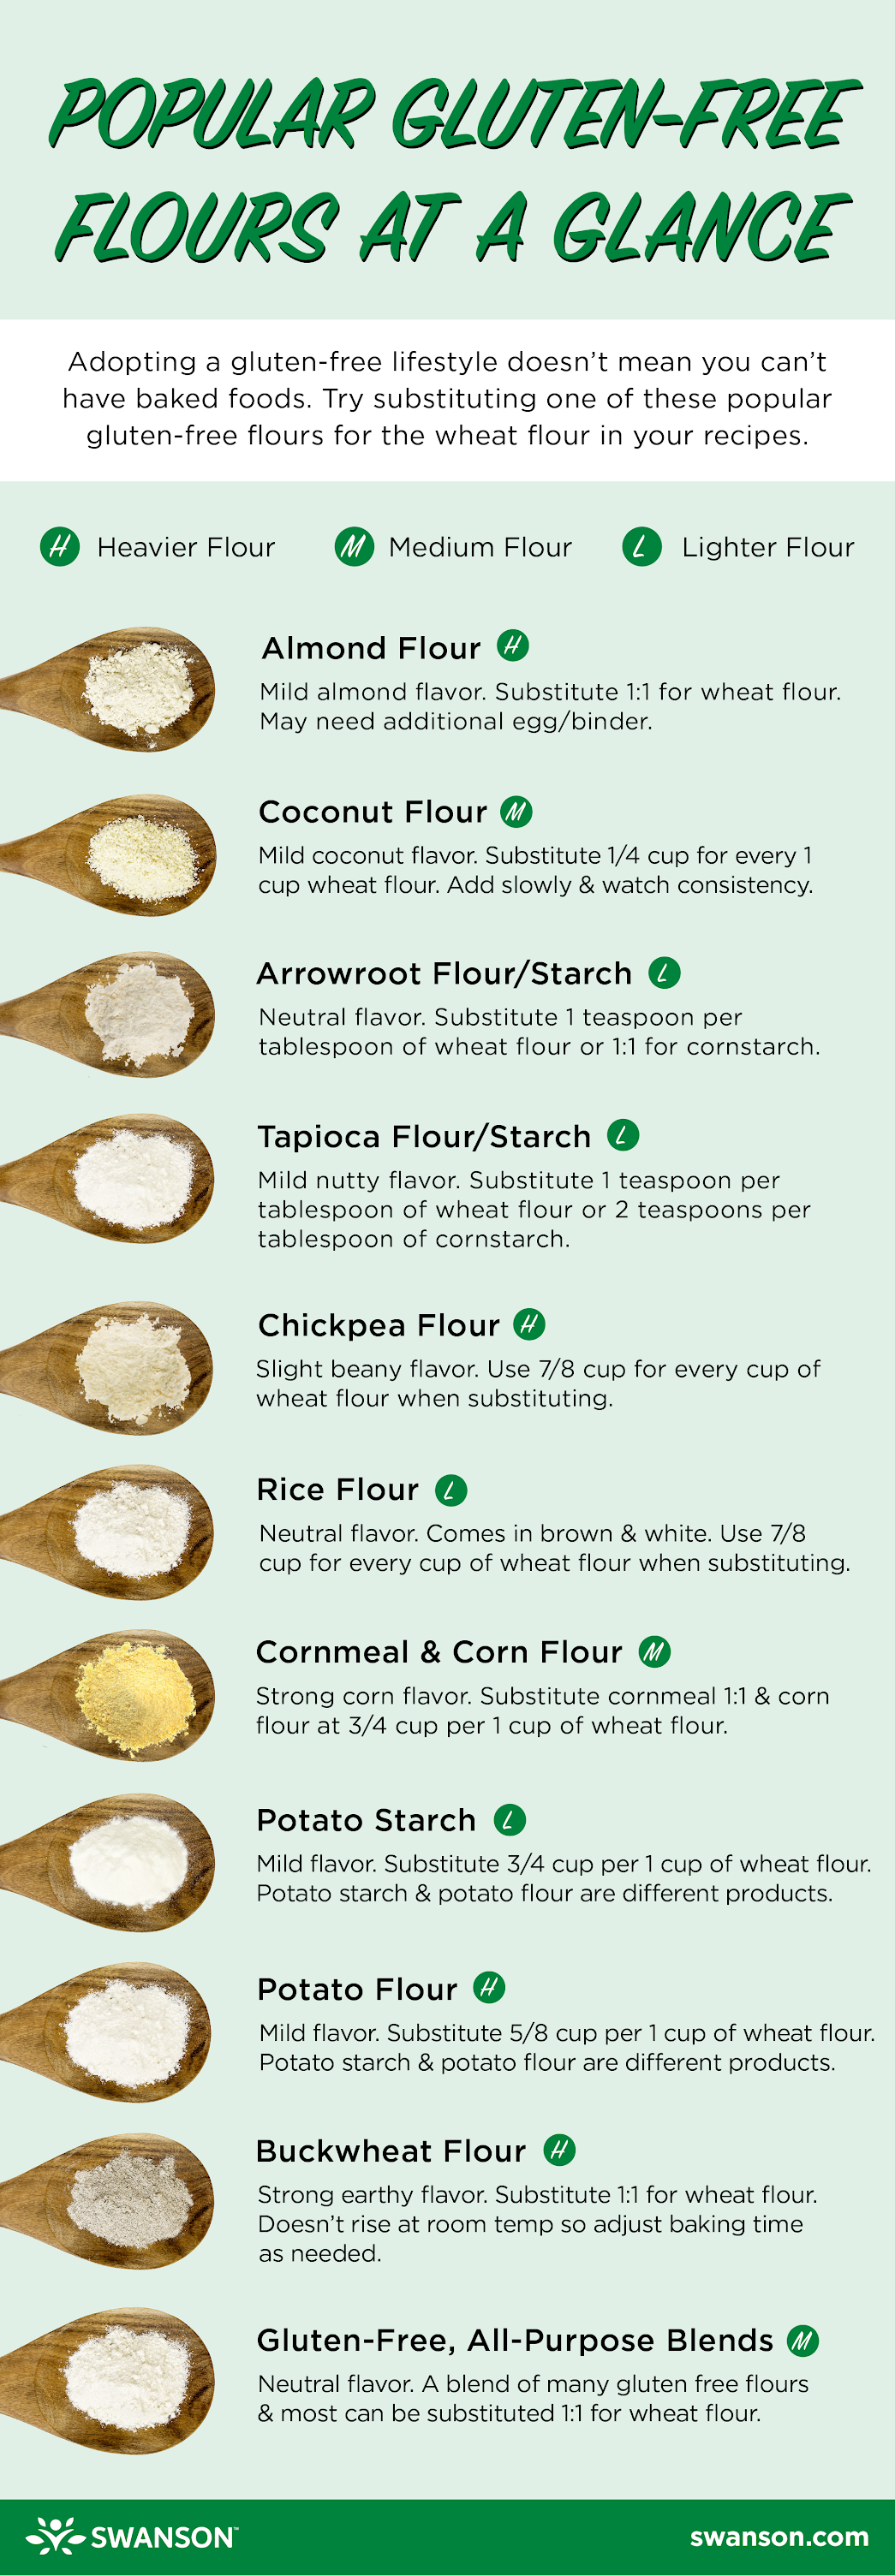 Popular Gluten Free Flours At a Glance #Infographic